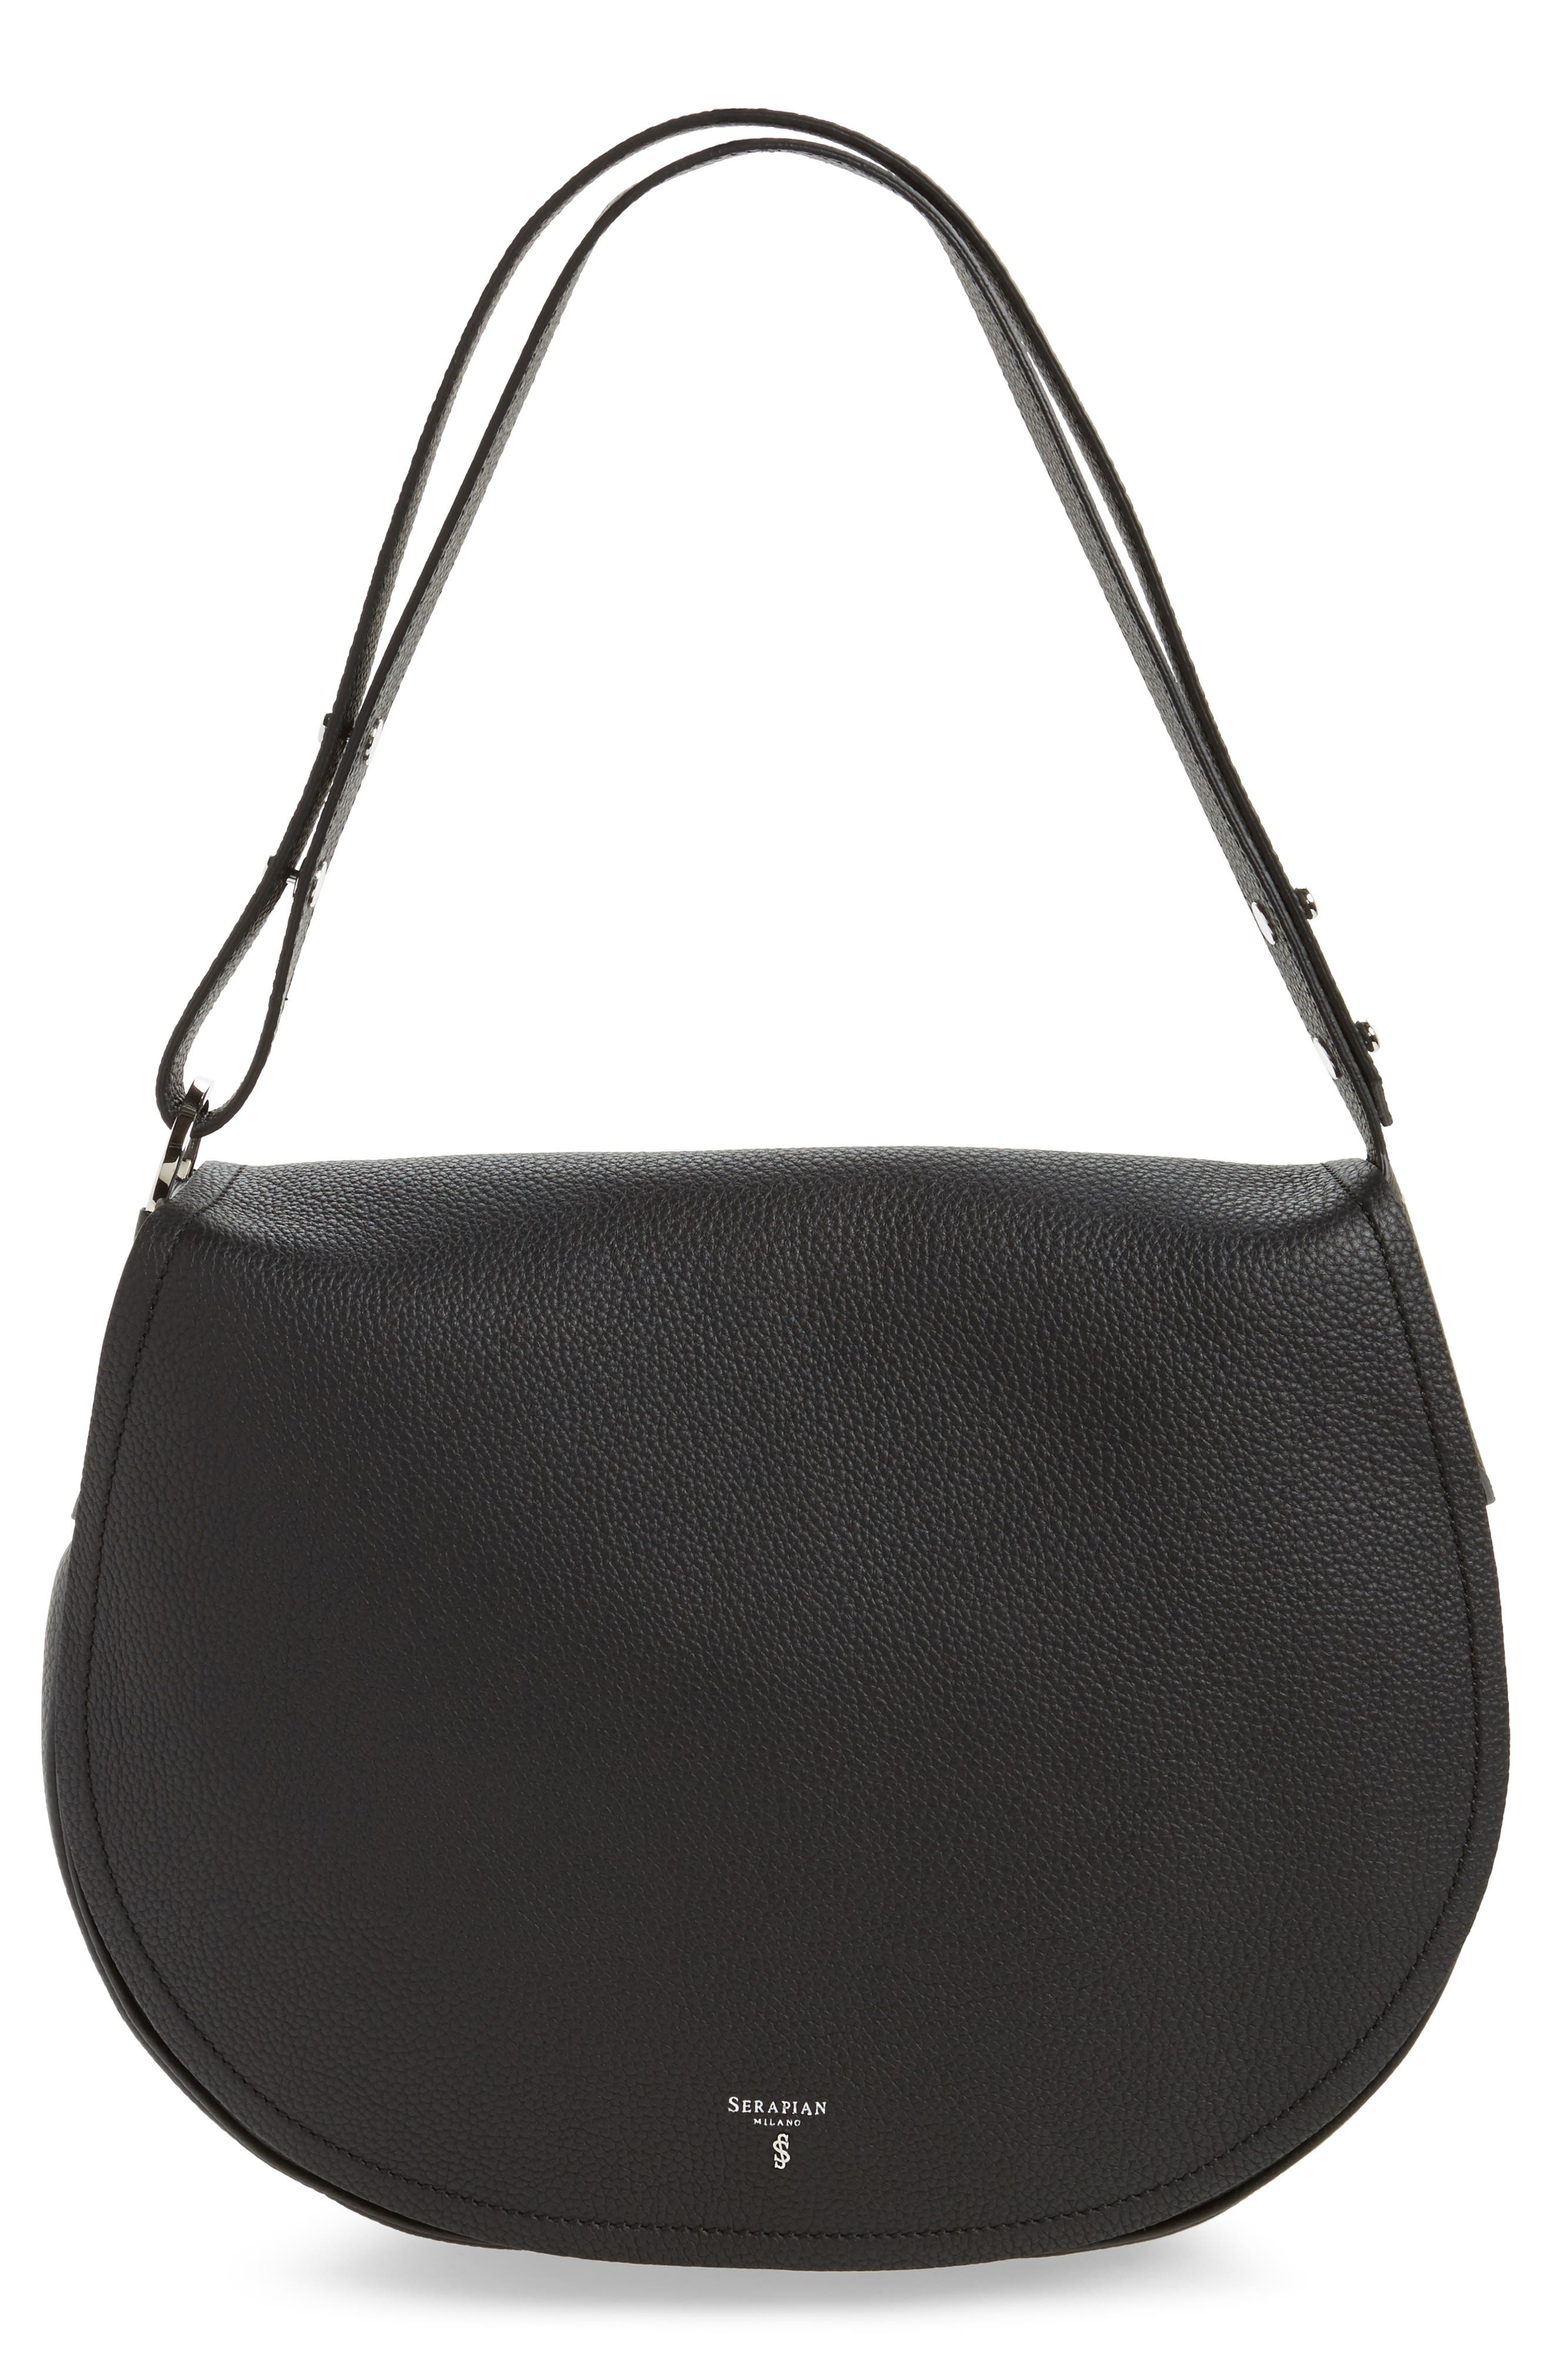 Serapian Milano Valeria Cachemire Leather Saddle Bag